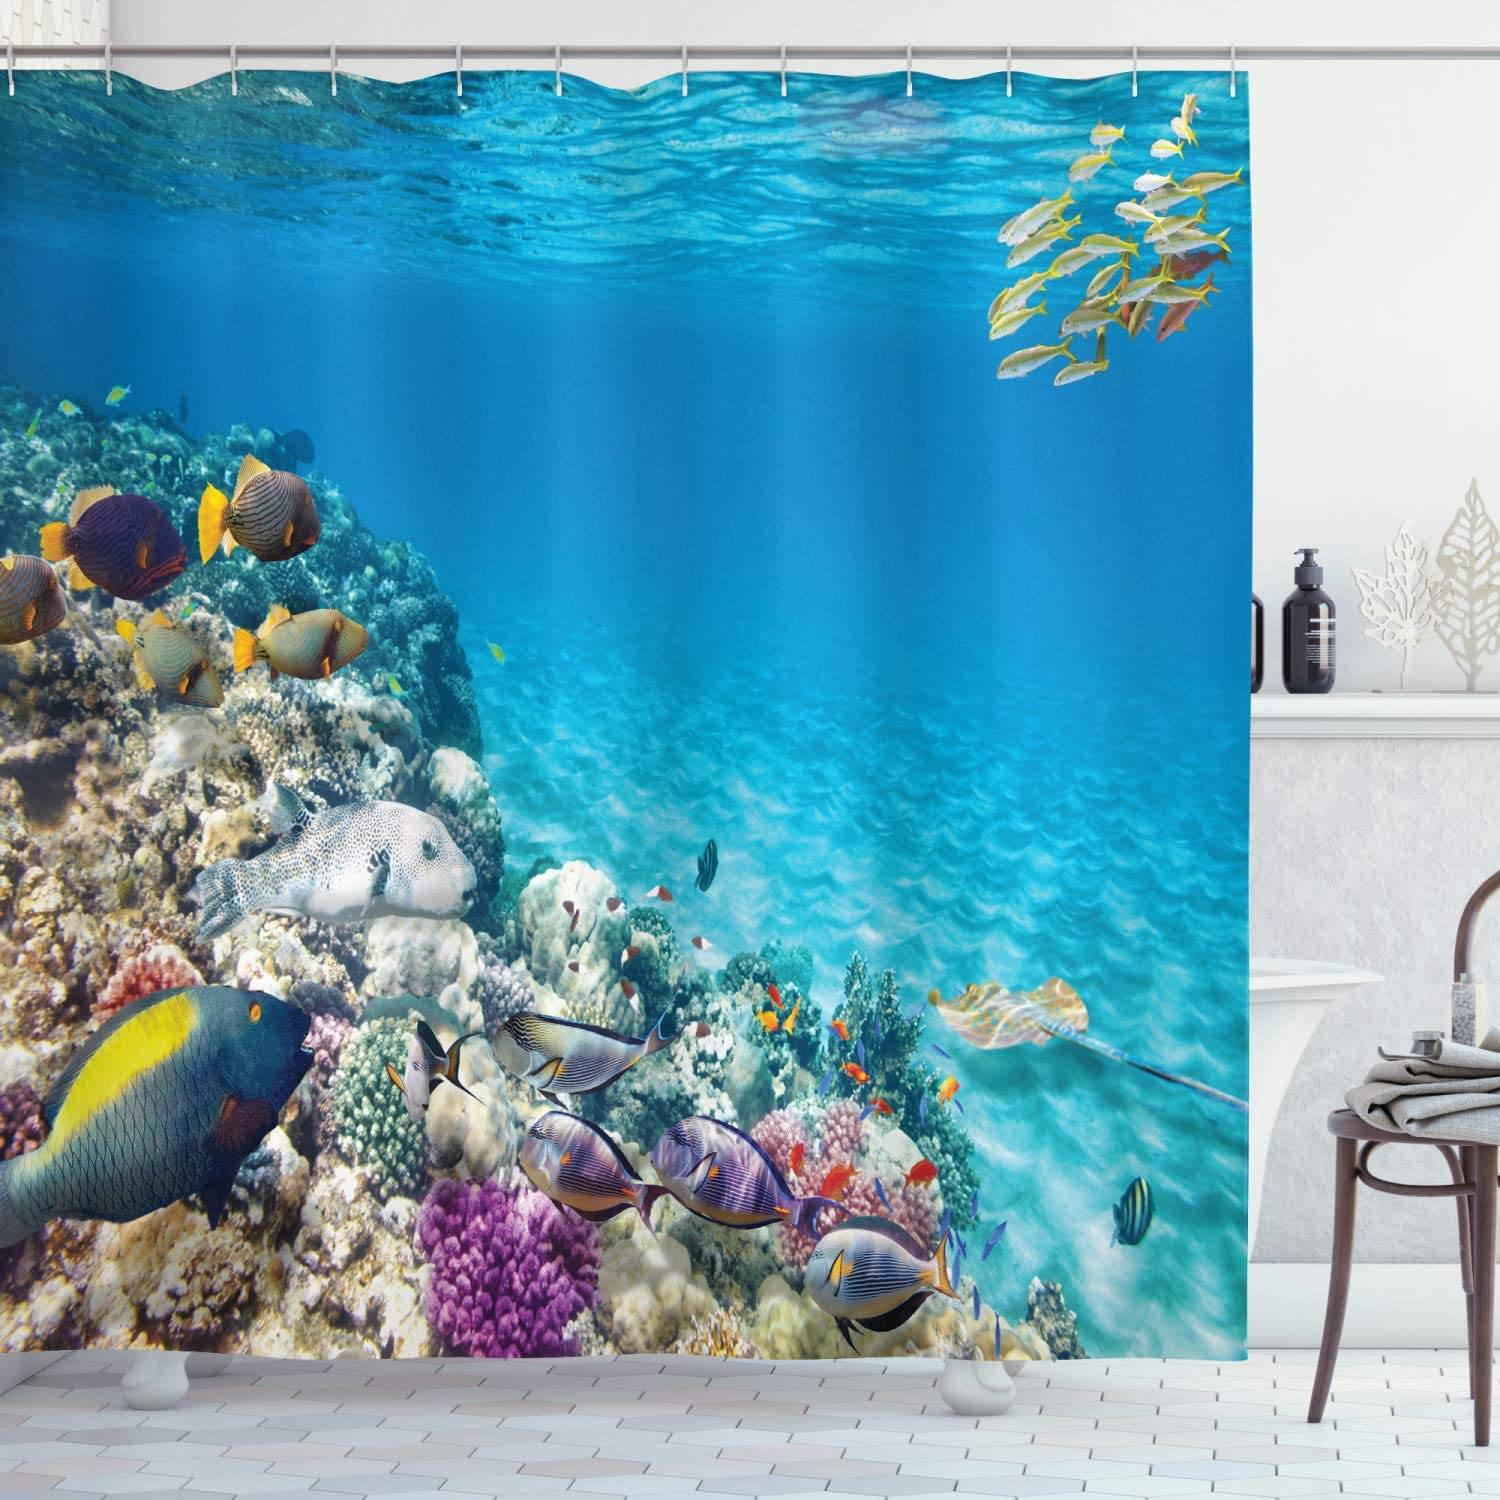 Ambesonne Ocean Shower Curtain, Clear Underwater Sea Life Animal World Corals Tropical Fishes and Stingray, Cloth Fabric Bathroom Decor Set with Hooks, 70